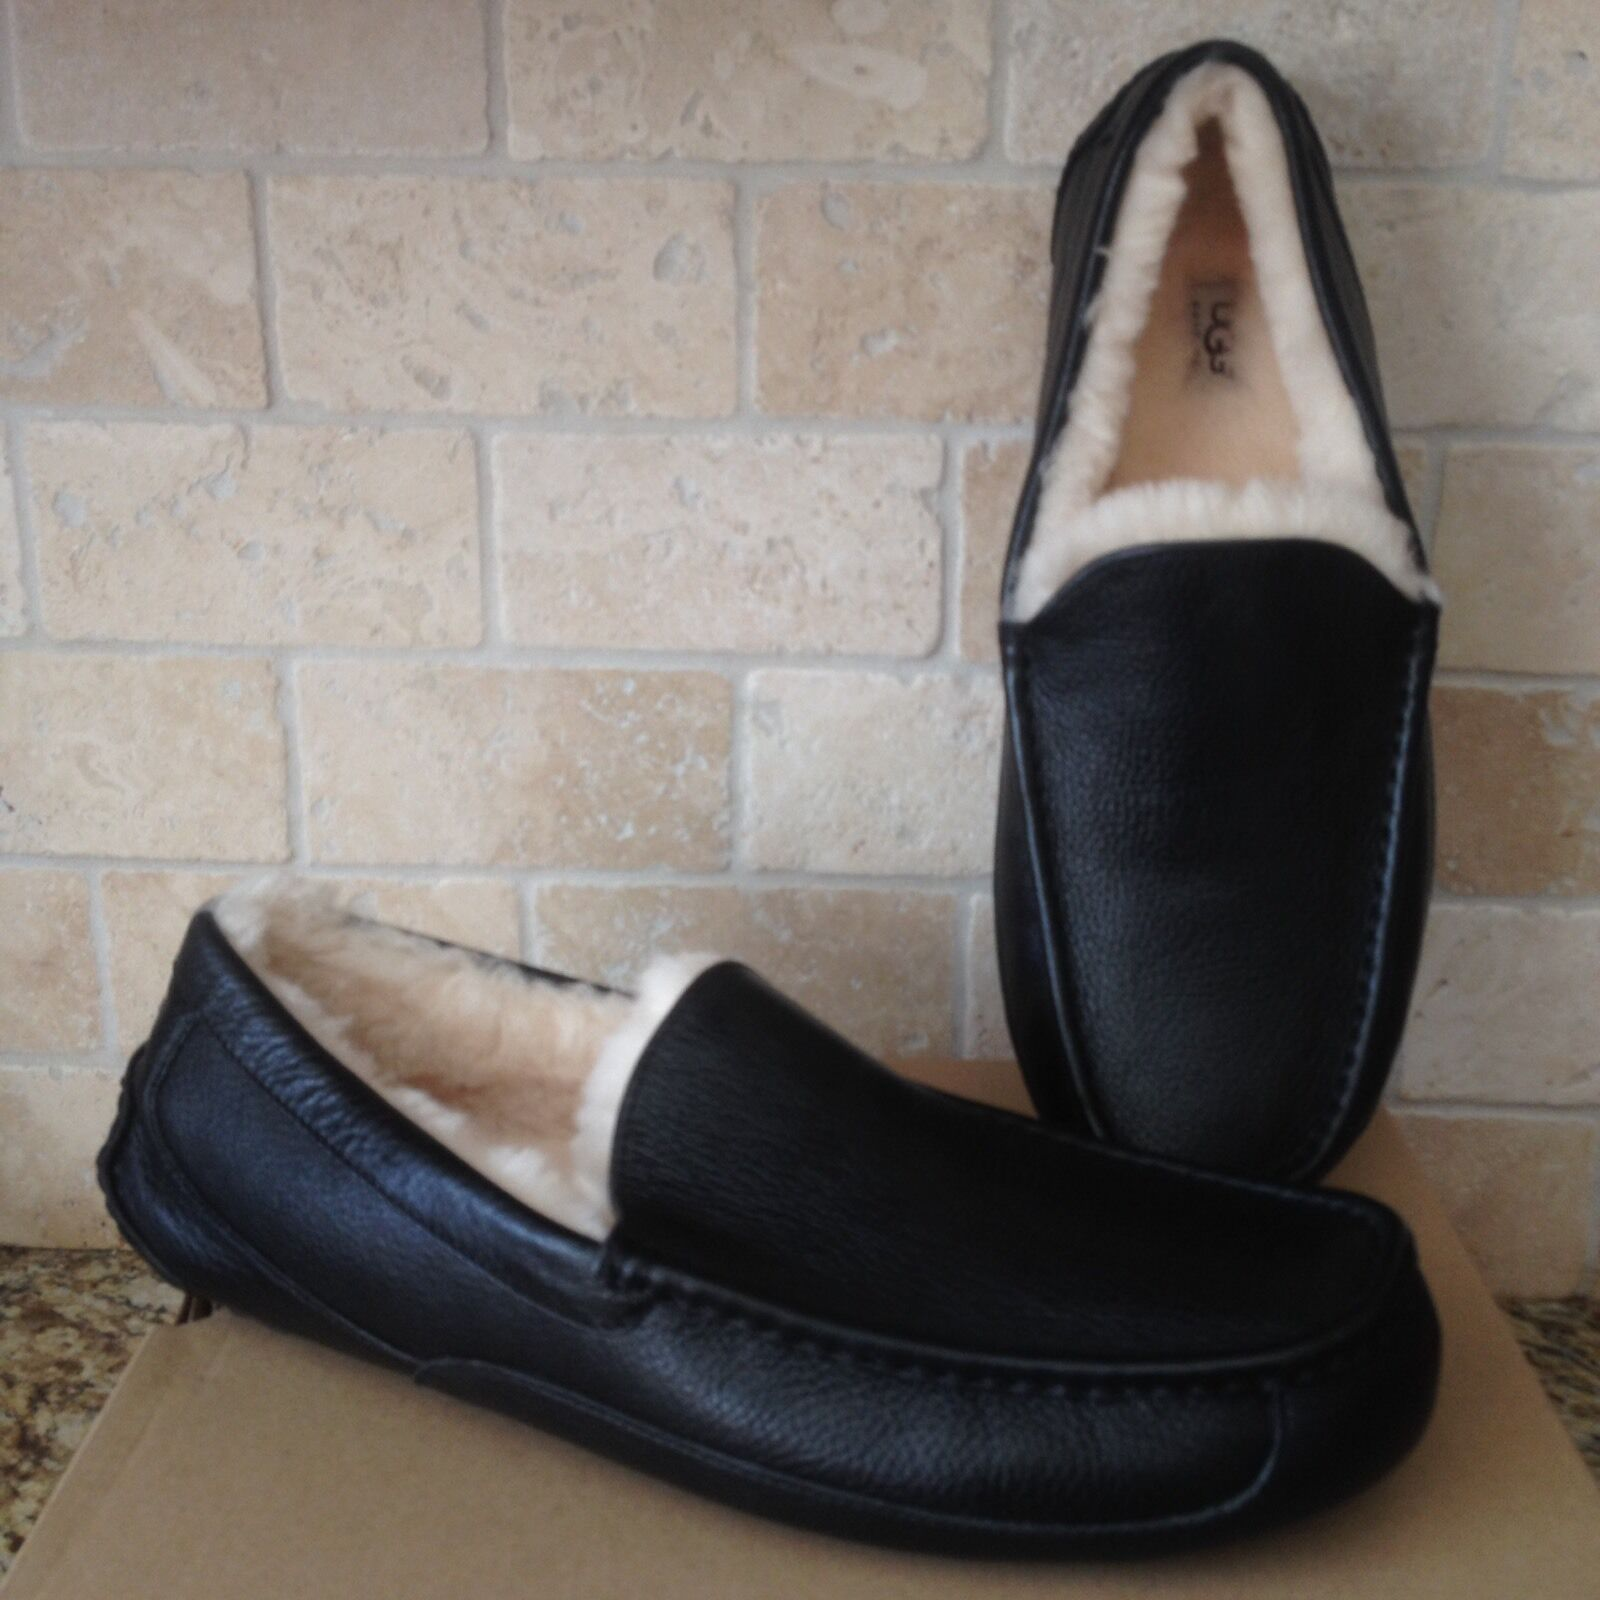 Men's Dunlop Touch Fastening Carpet Slippers UK Size 12 Durable Outer Sole ##